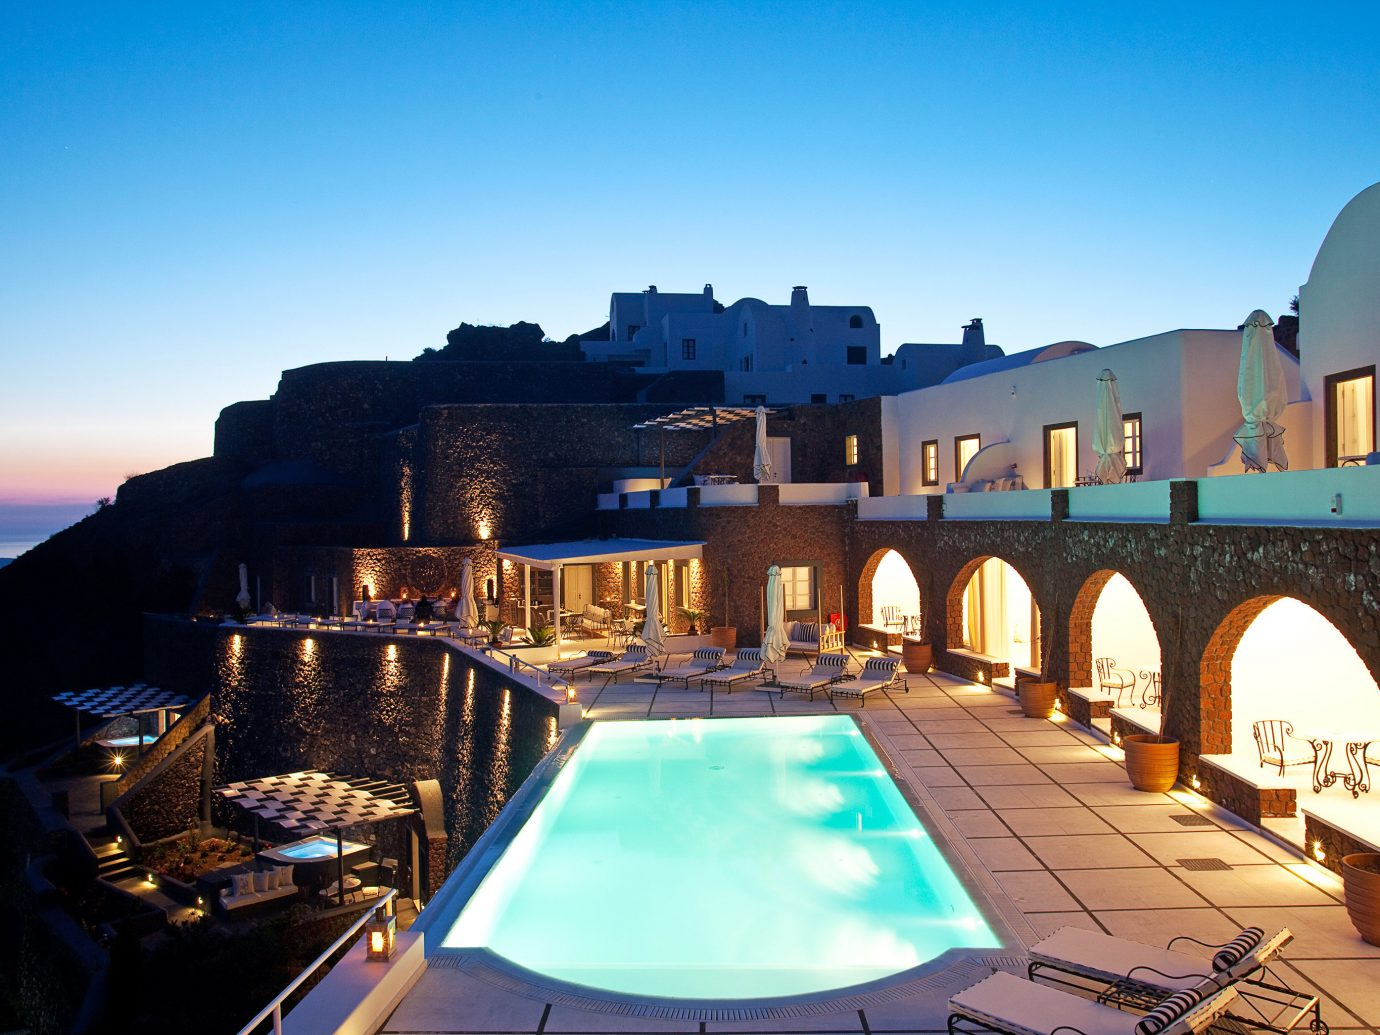 Beach Beachfront Greece Hotels Lounge Luxury Modern Ocean Pool Santorini sky outdoor vacation evening estate dusk Sea swimming pool cityscape Resort